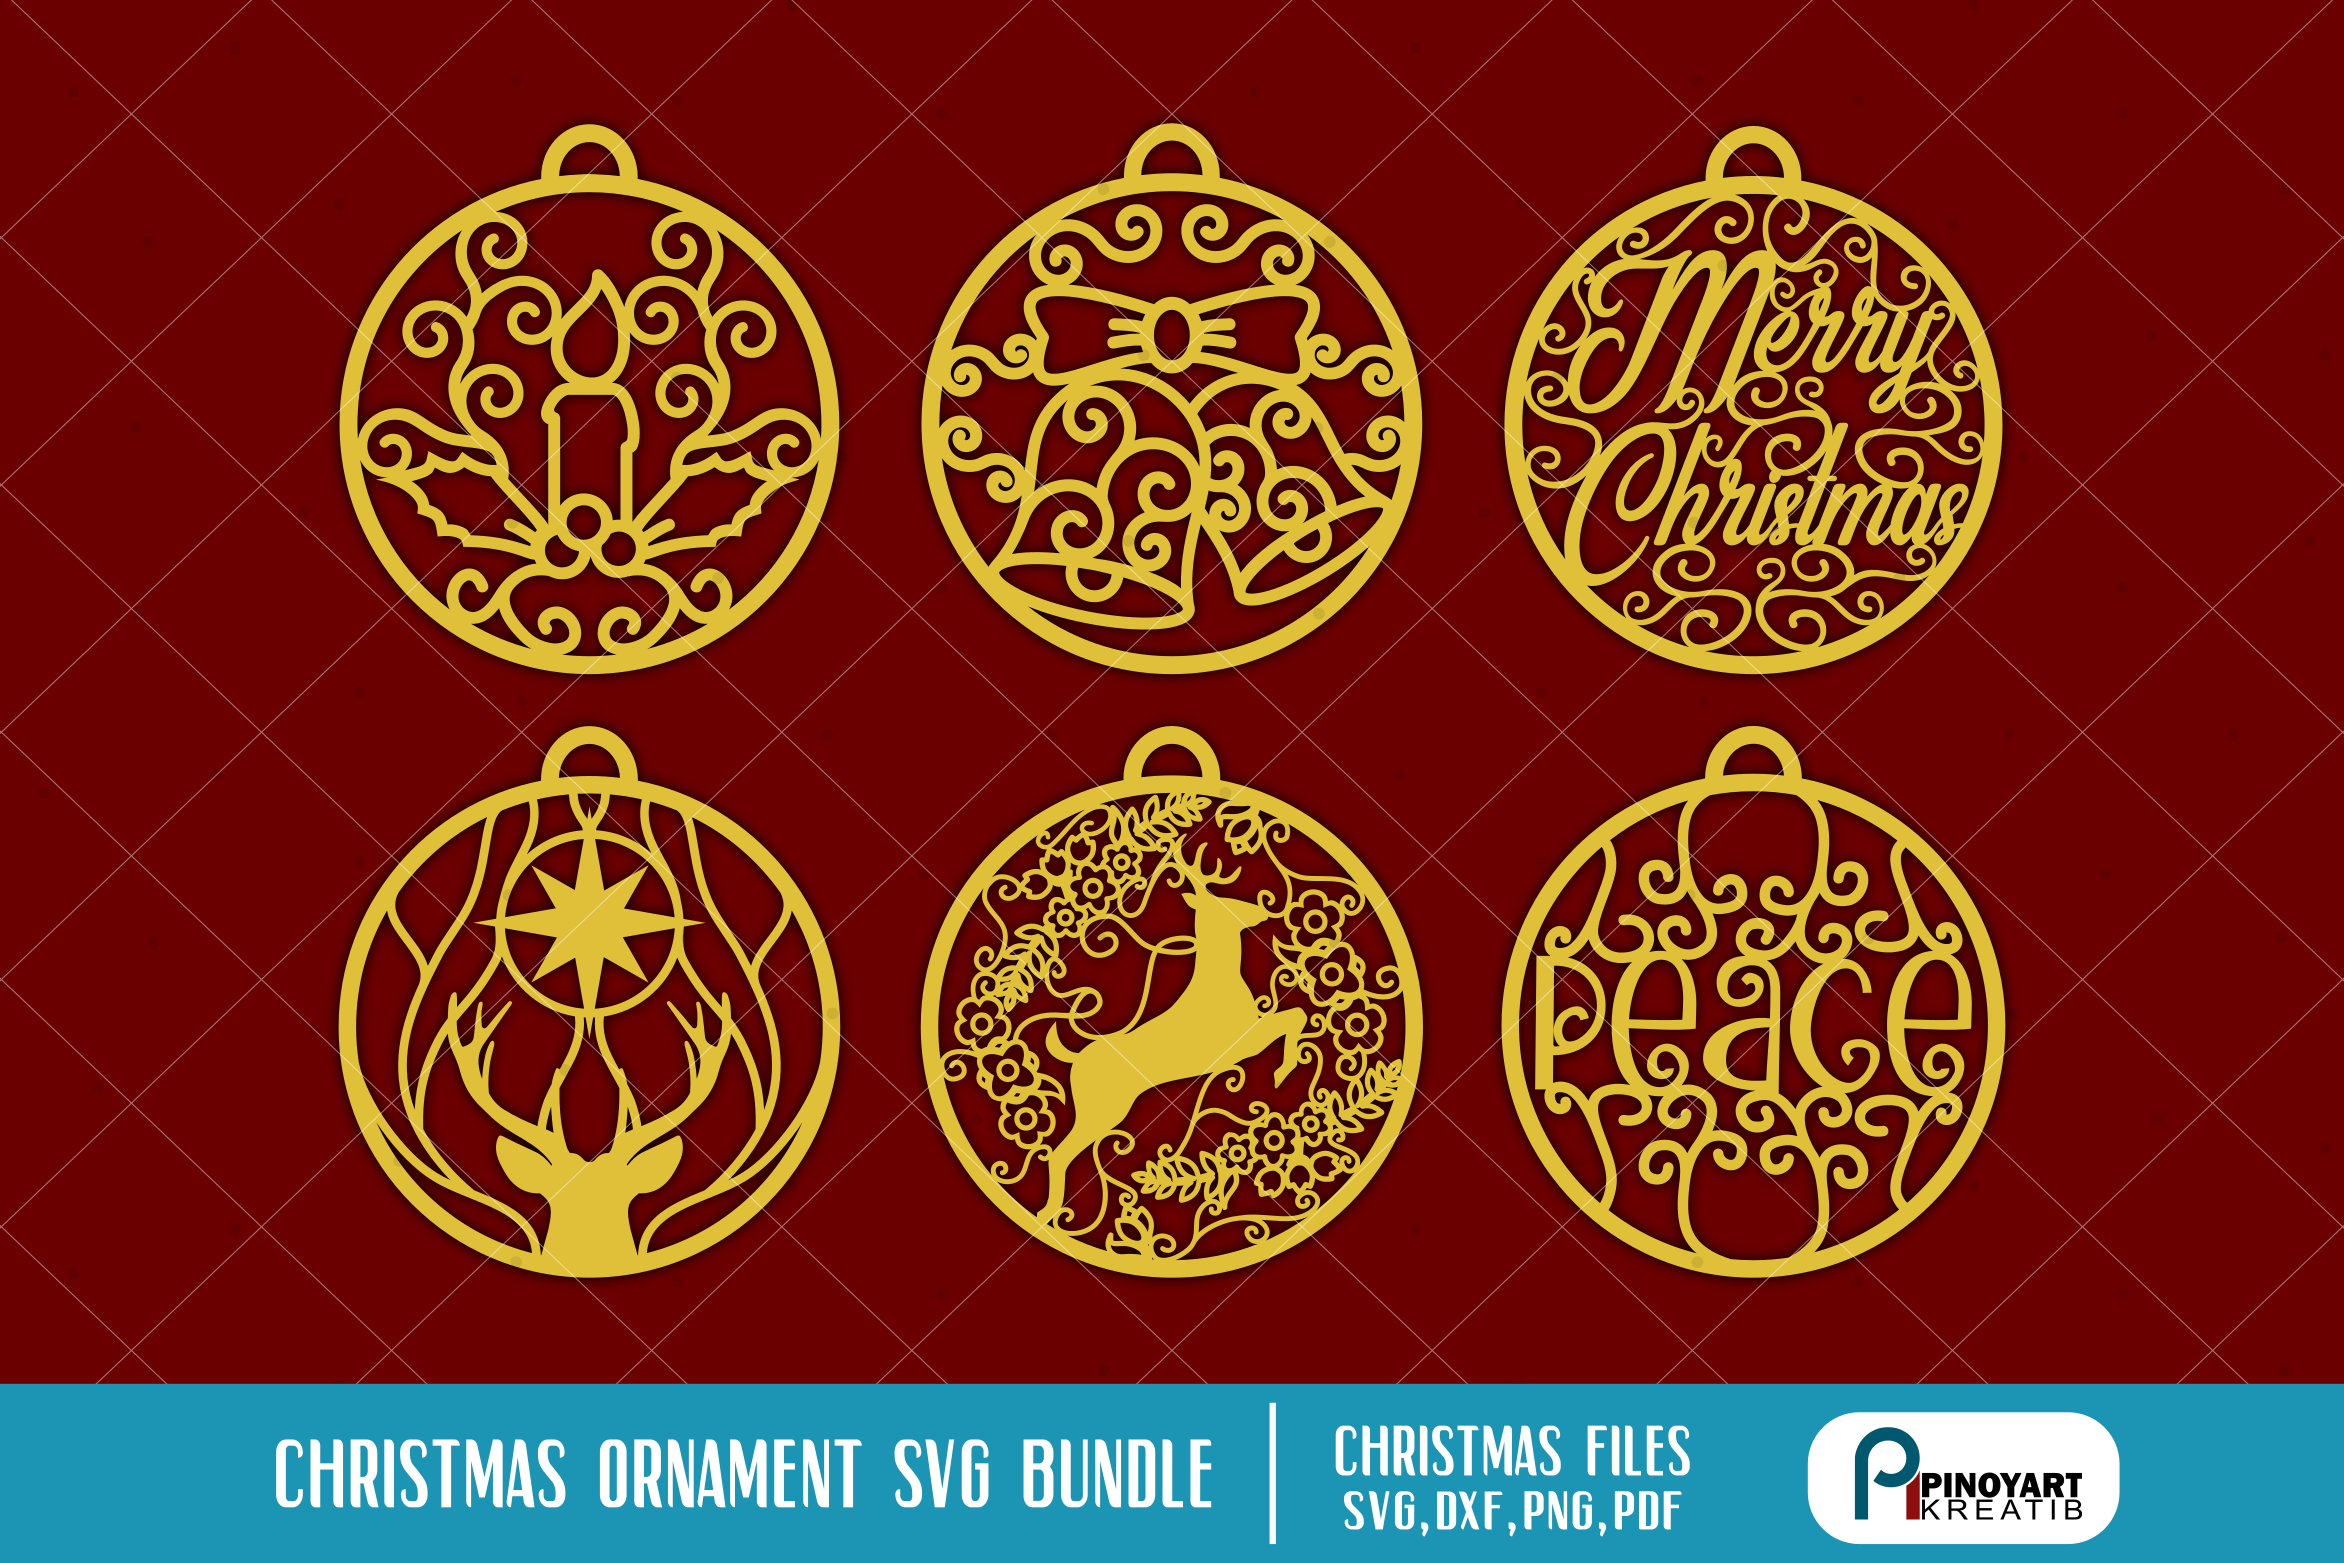 Download Free Christmas Ornaments Bundle Graphic By Pinoyartkreatib Creative for Cricut Explore, Silhouette and other cutting machines.